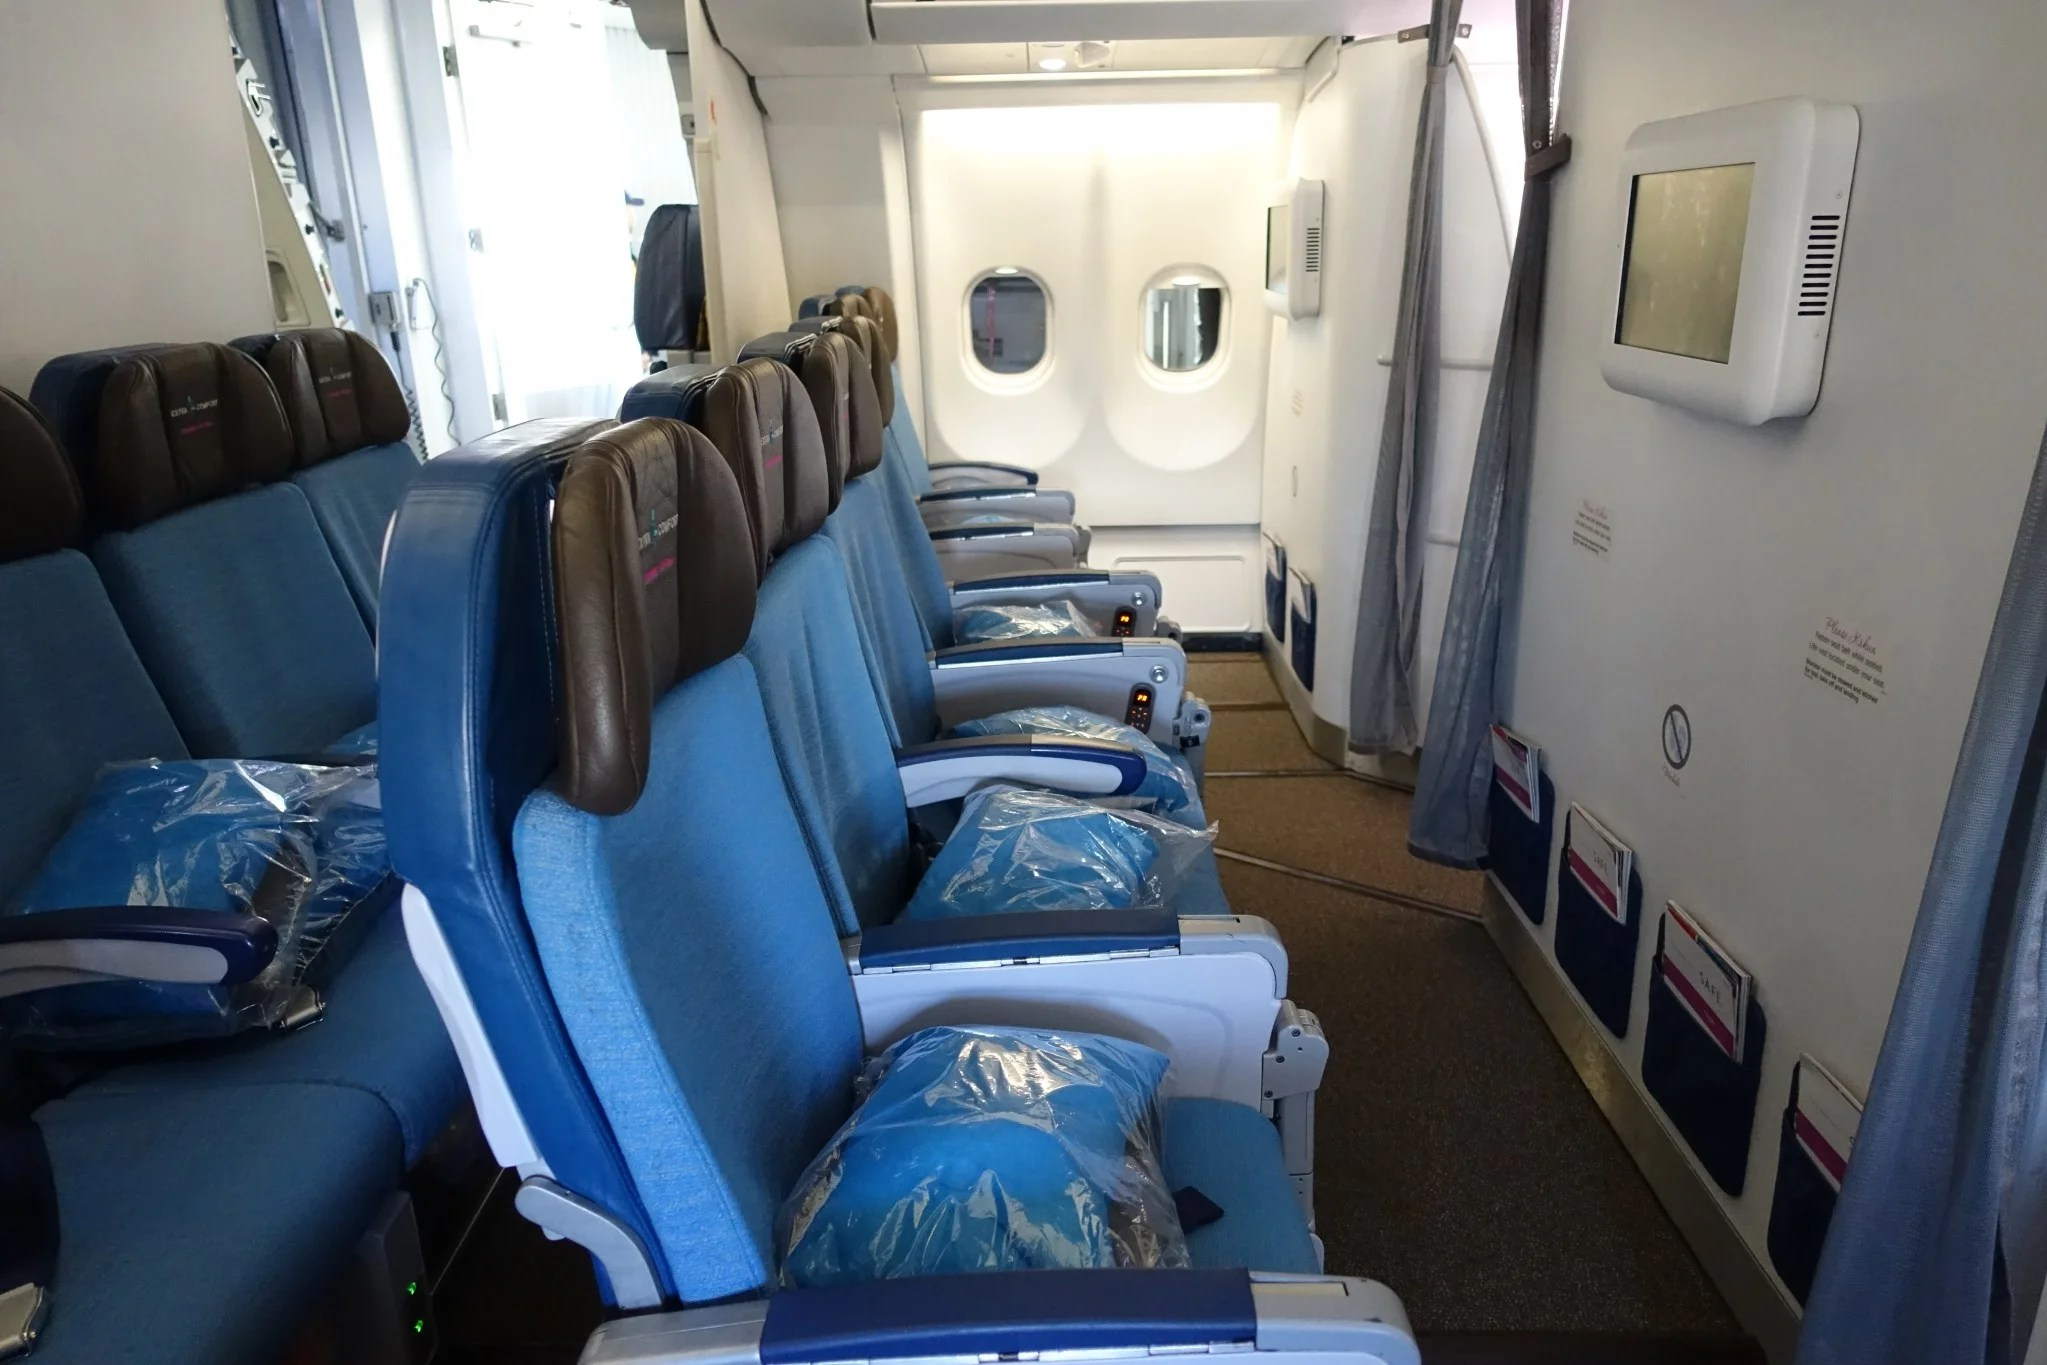 Wondrous Review Hawaiian Airlines A330 Economy From Honolulu To Nyc Ibusinesslaw Wood Chair Design Ideas Ibusinesslaworg